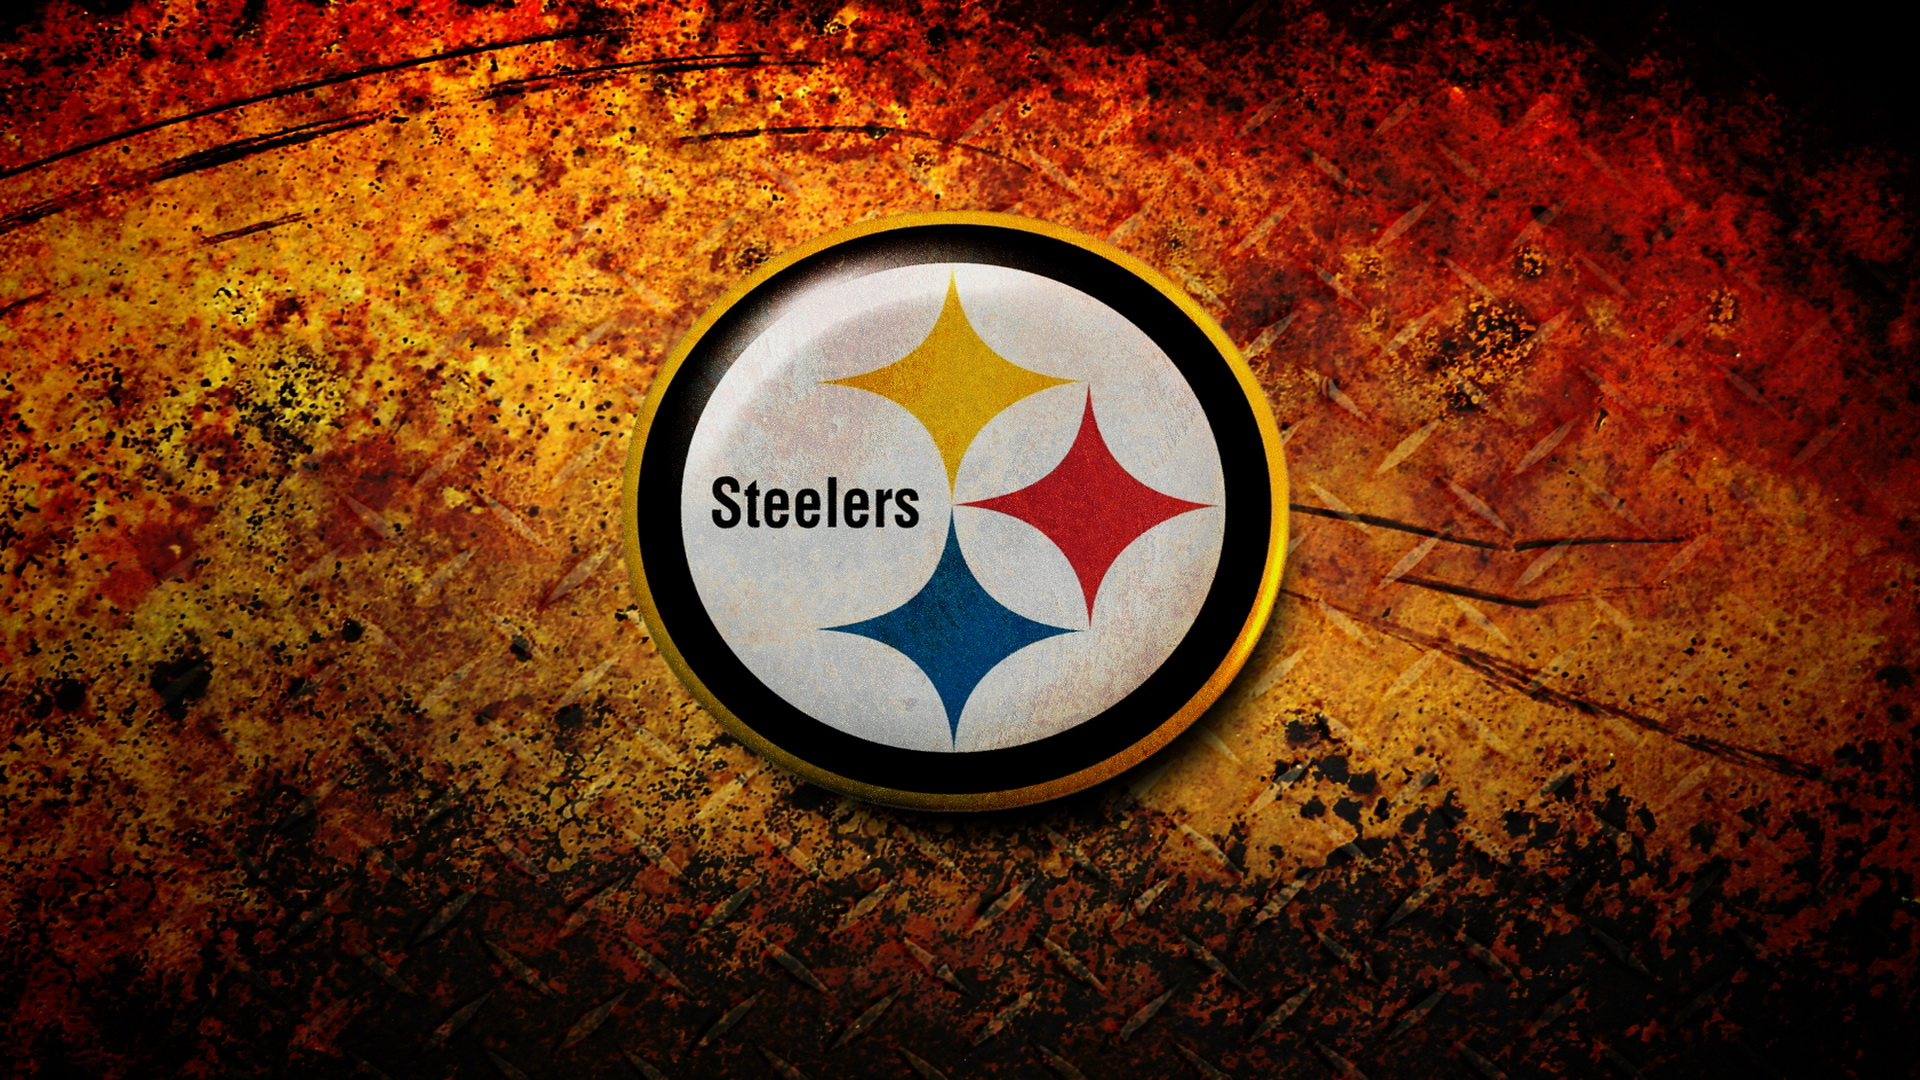 Vibrant Wallpapers Hd Backgrounds: Steelers HD Wallpaper 1080p